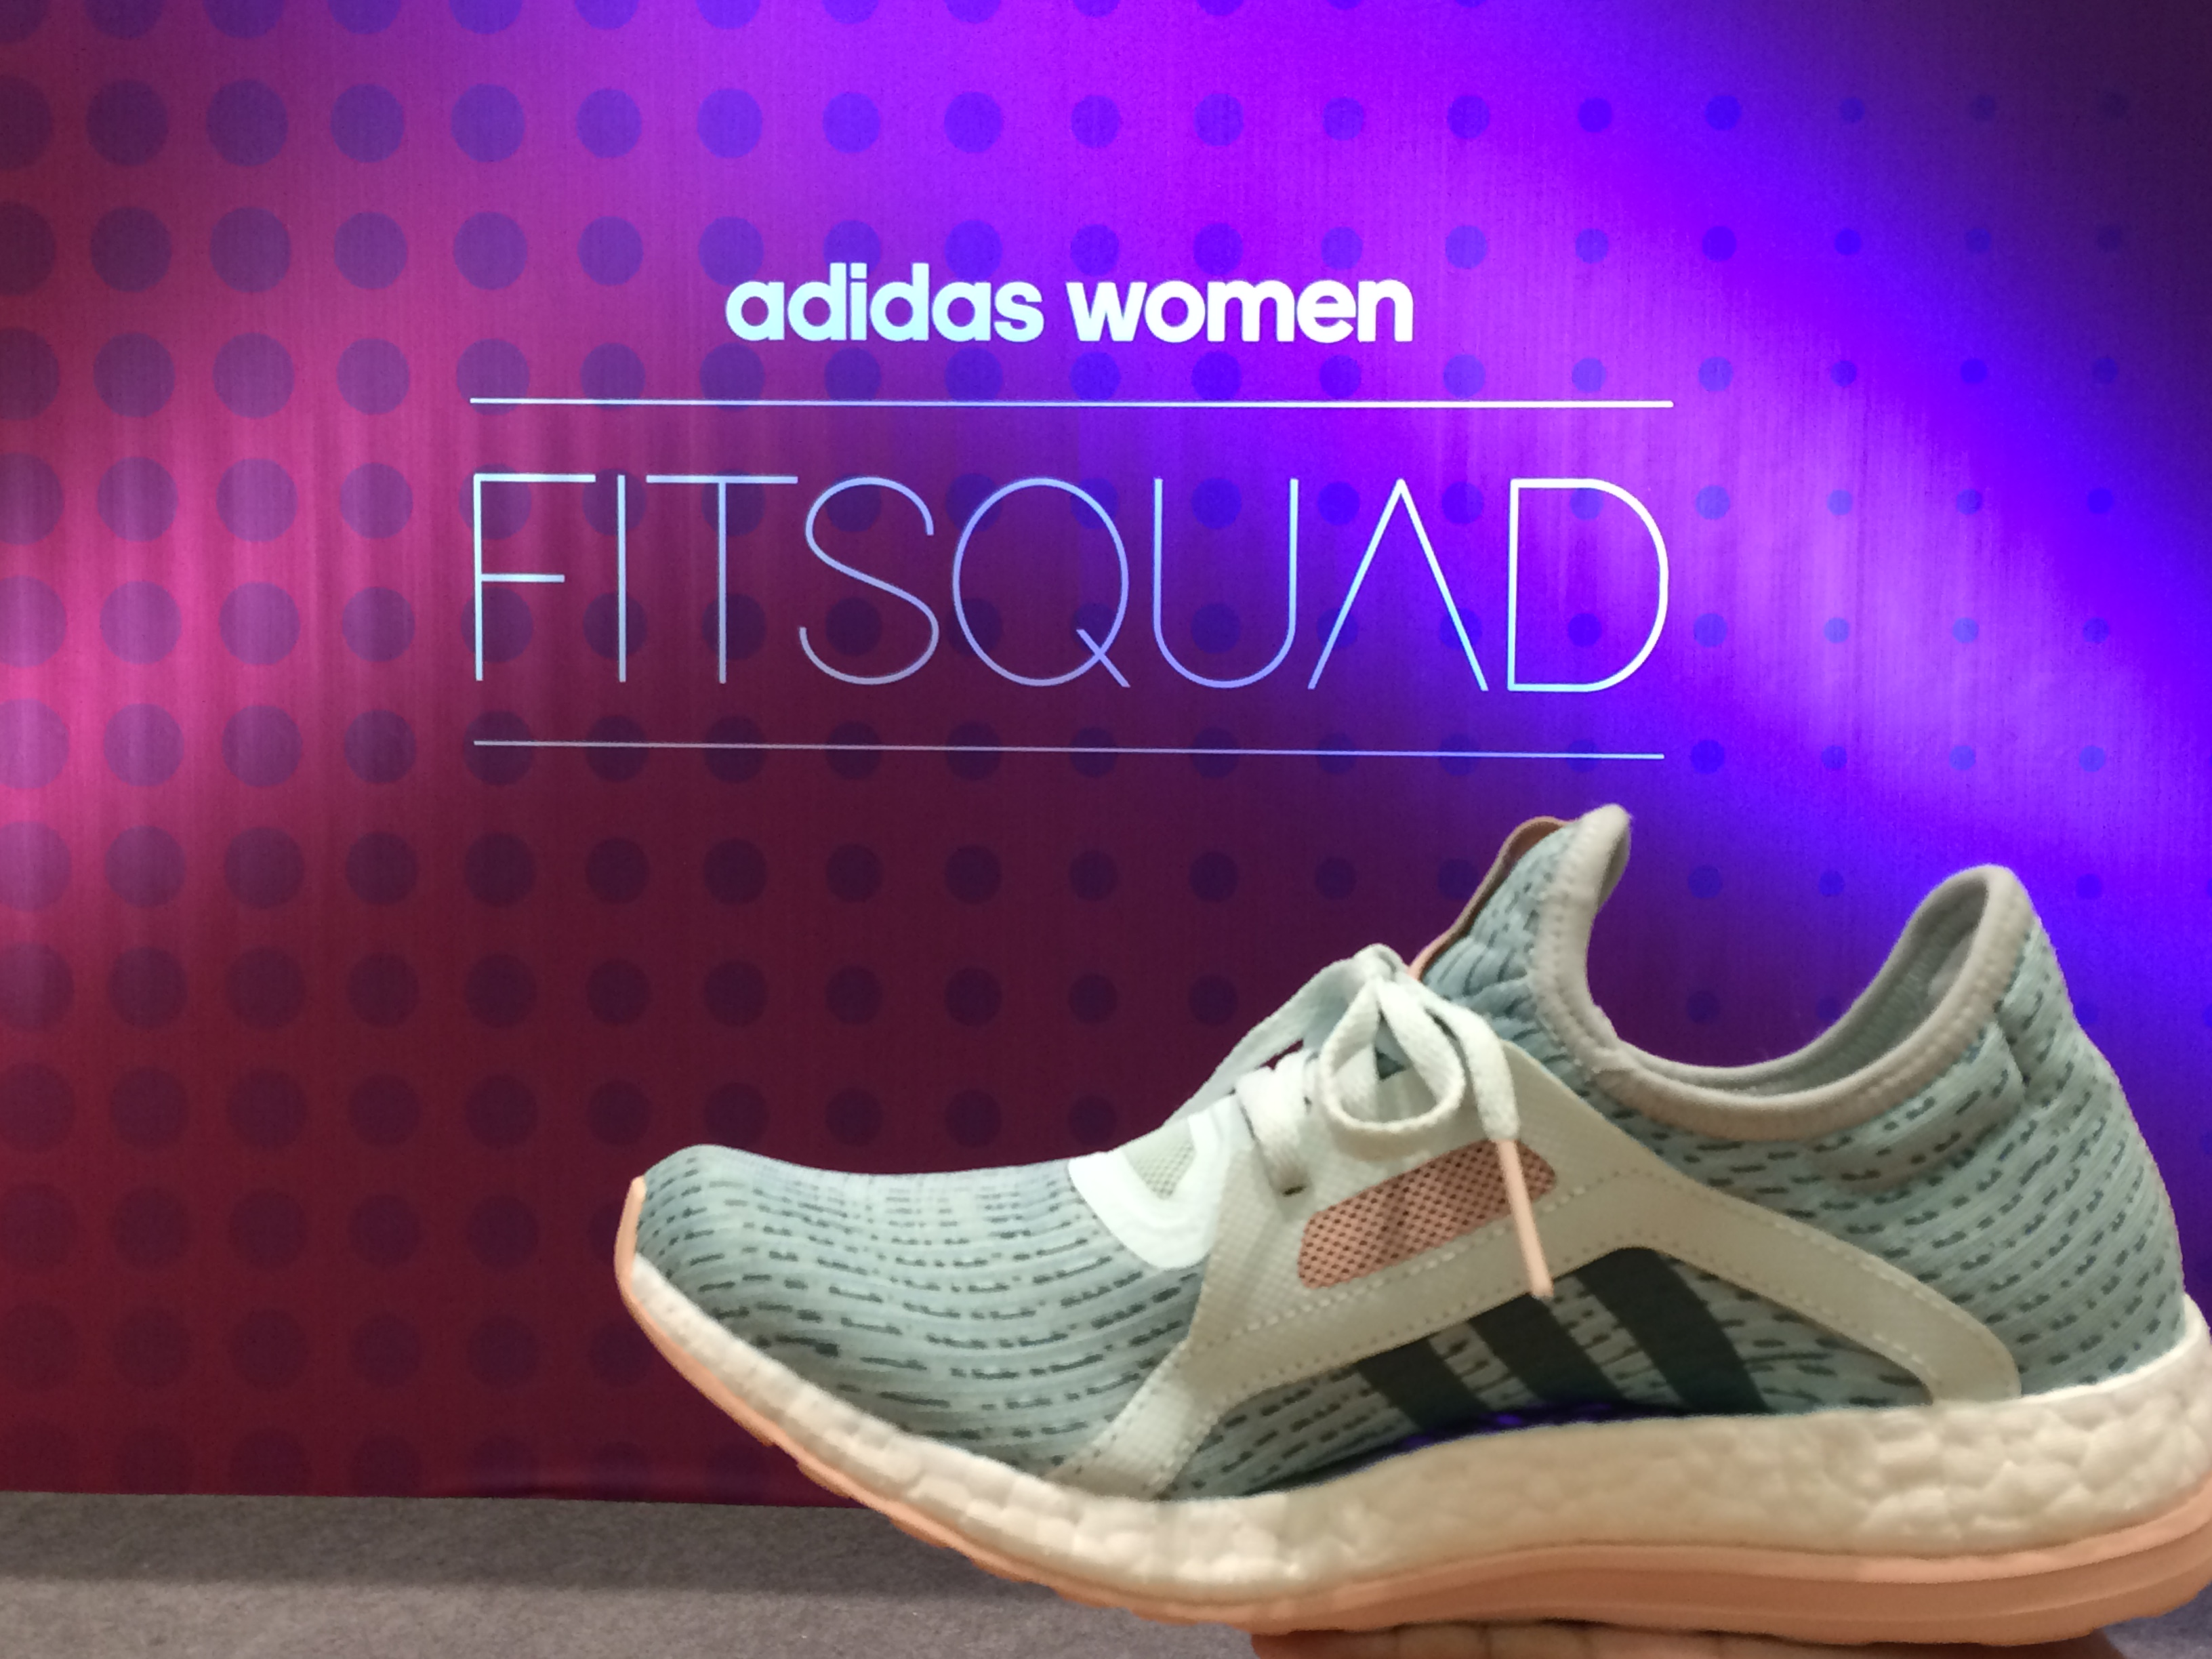 The adidas Women Fit Squad and the new PureBOOST X for Women s ... 601bbe4842